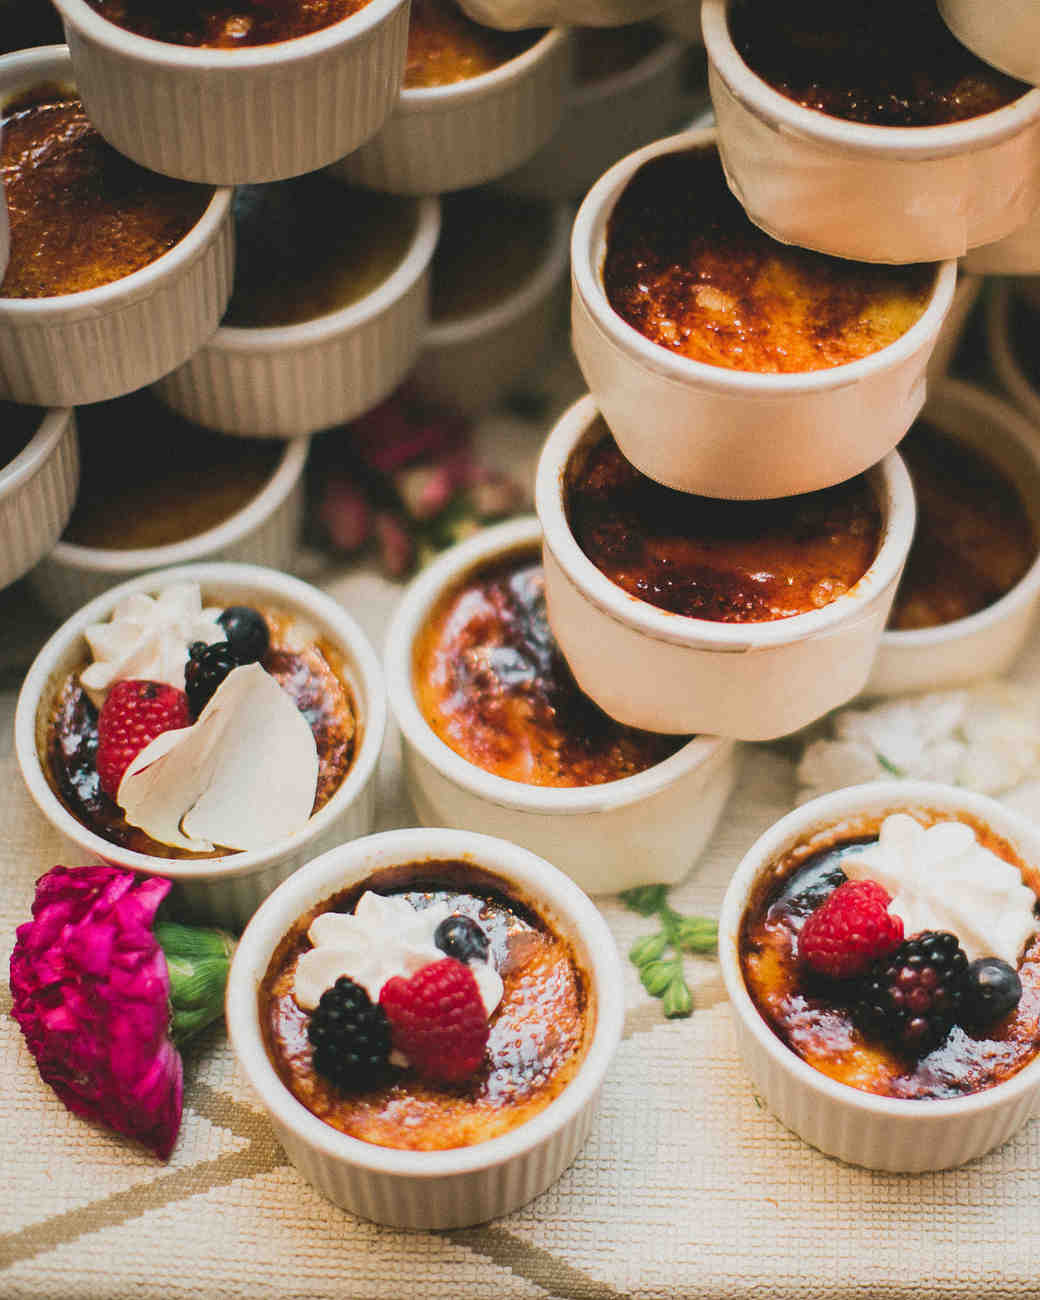 Small Desserts For Weddings: Best Wedding Dessert Ideas Of 2013